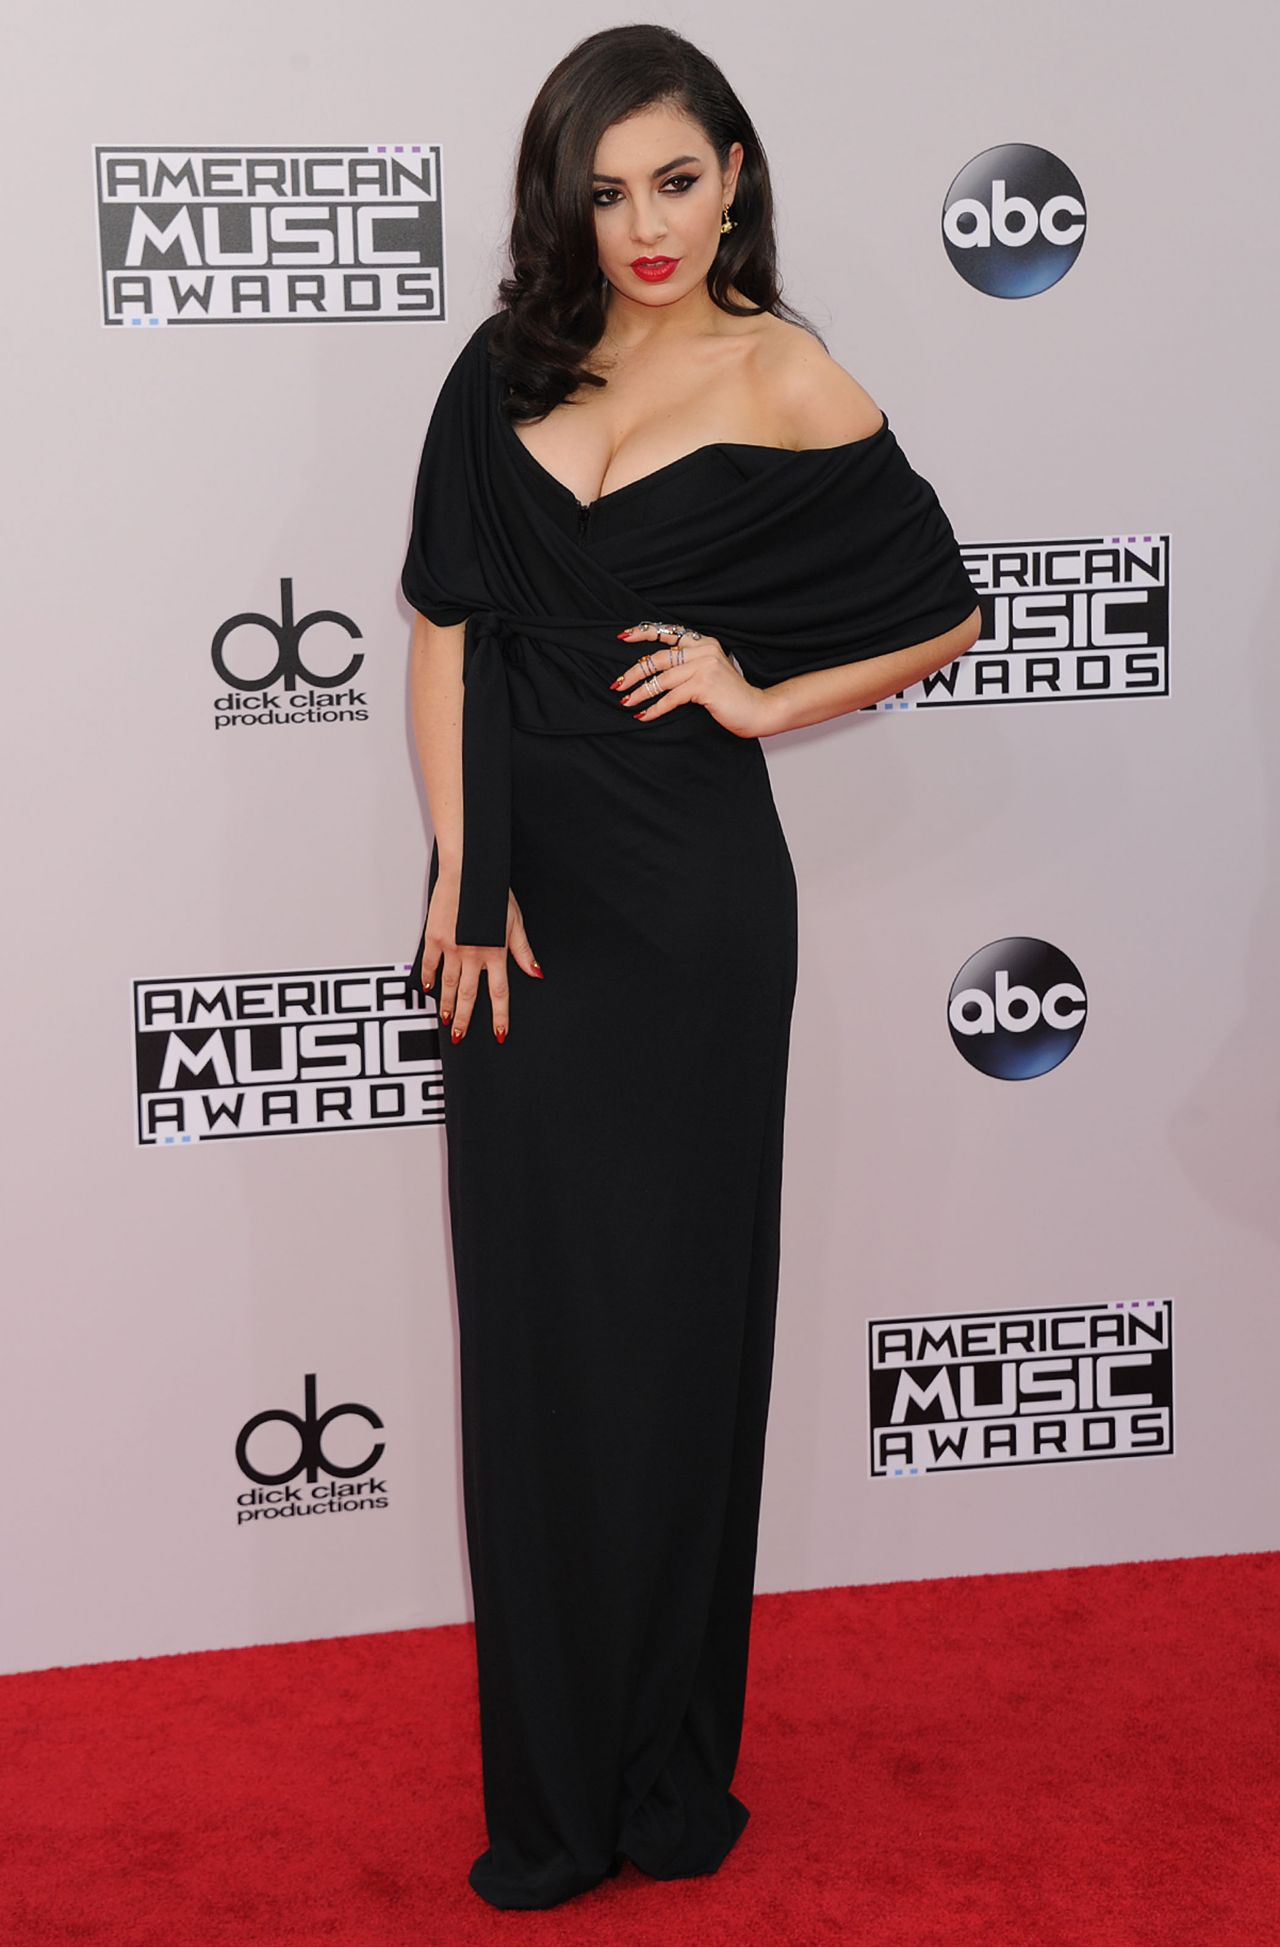 Charlie XCX on Red Carpet - 2014 American Music Awards in Los Angeles